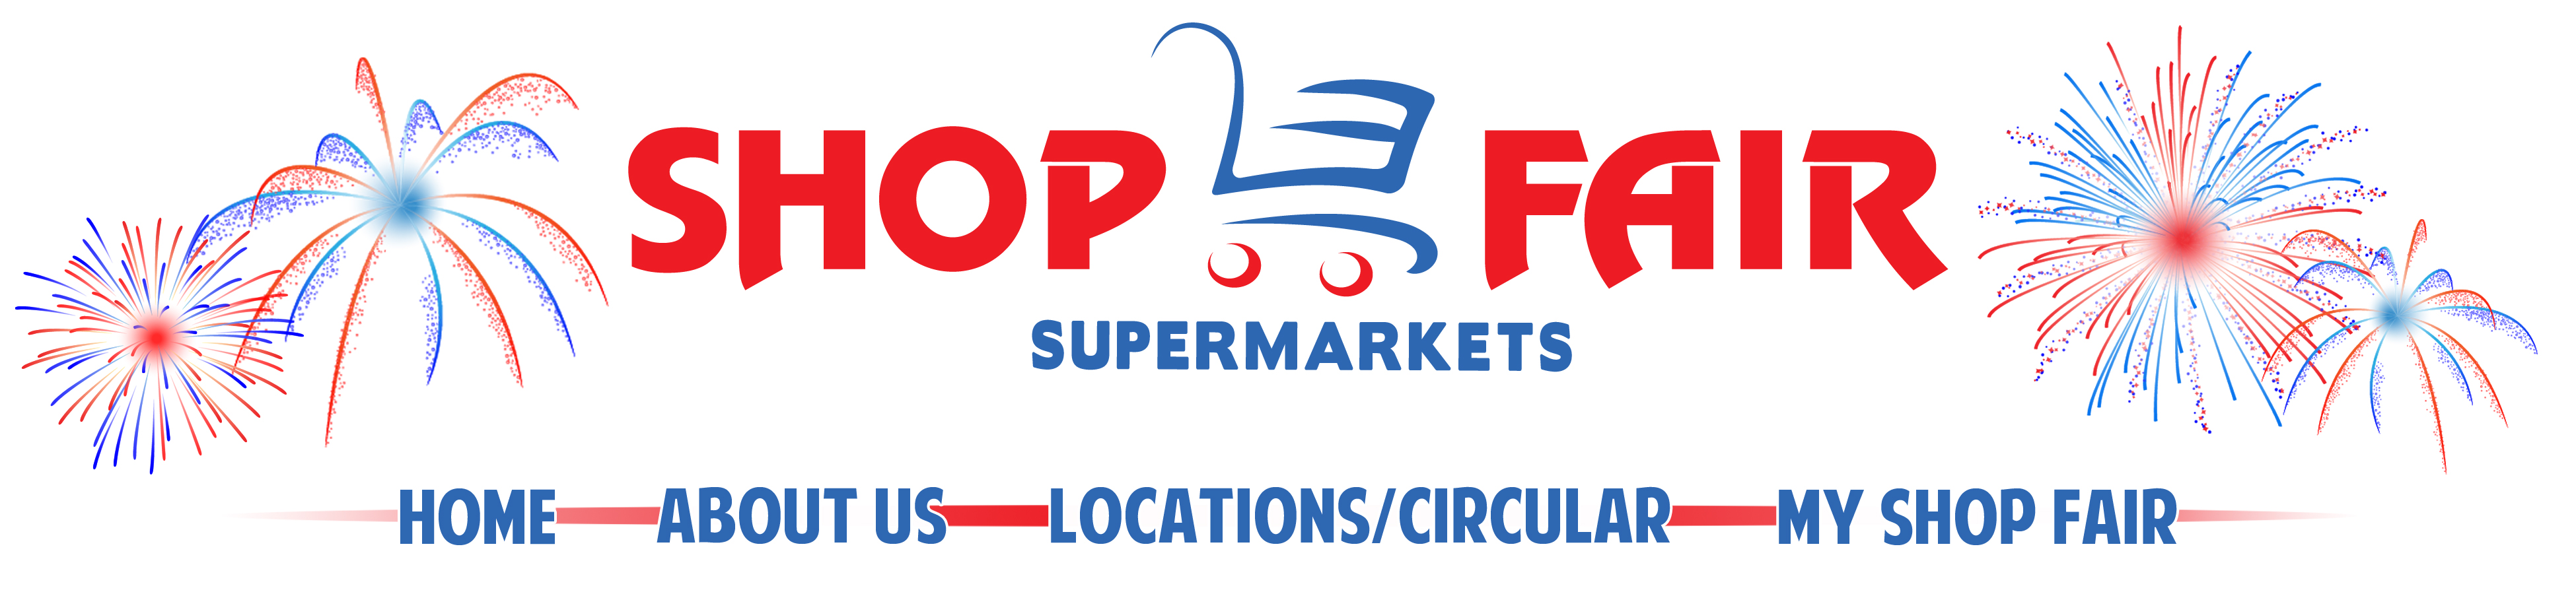 Shop Fair Supermarkets